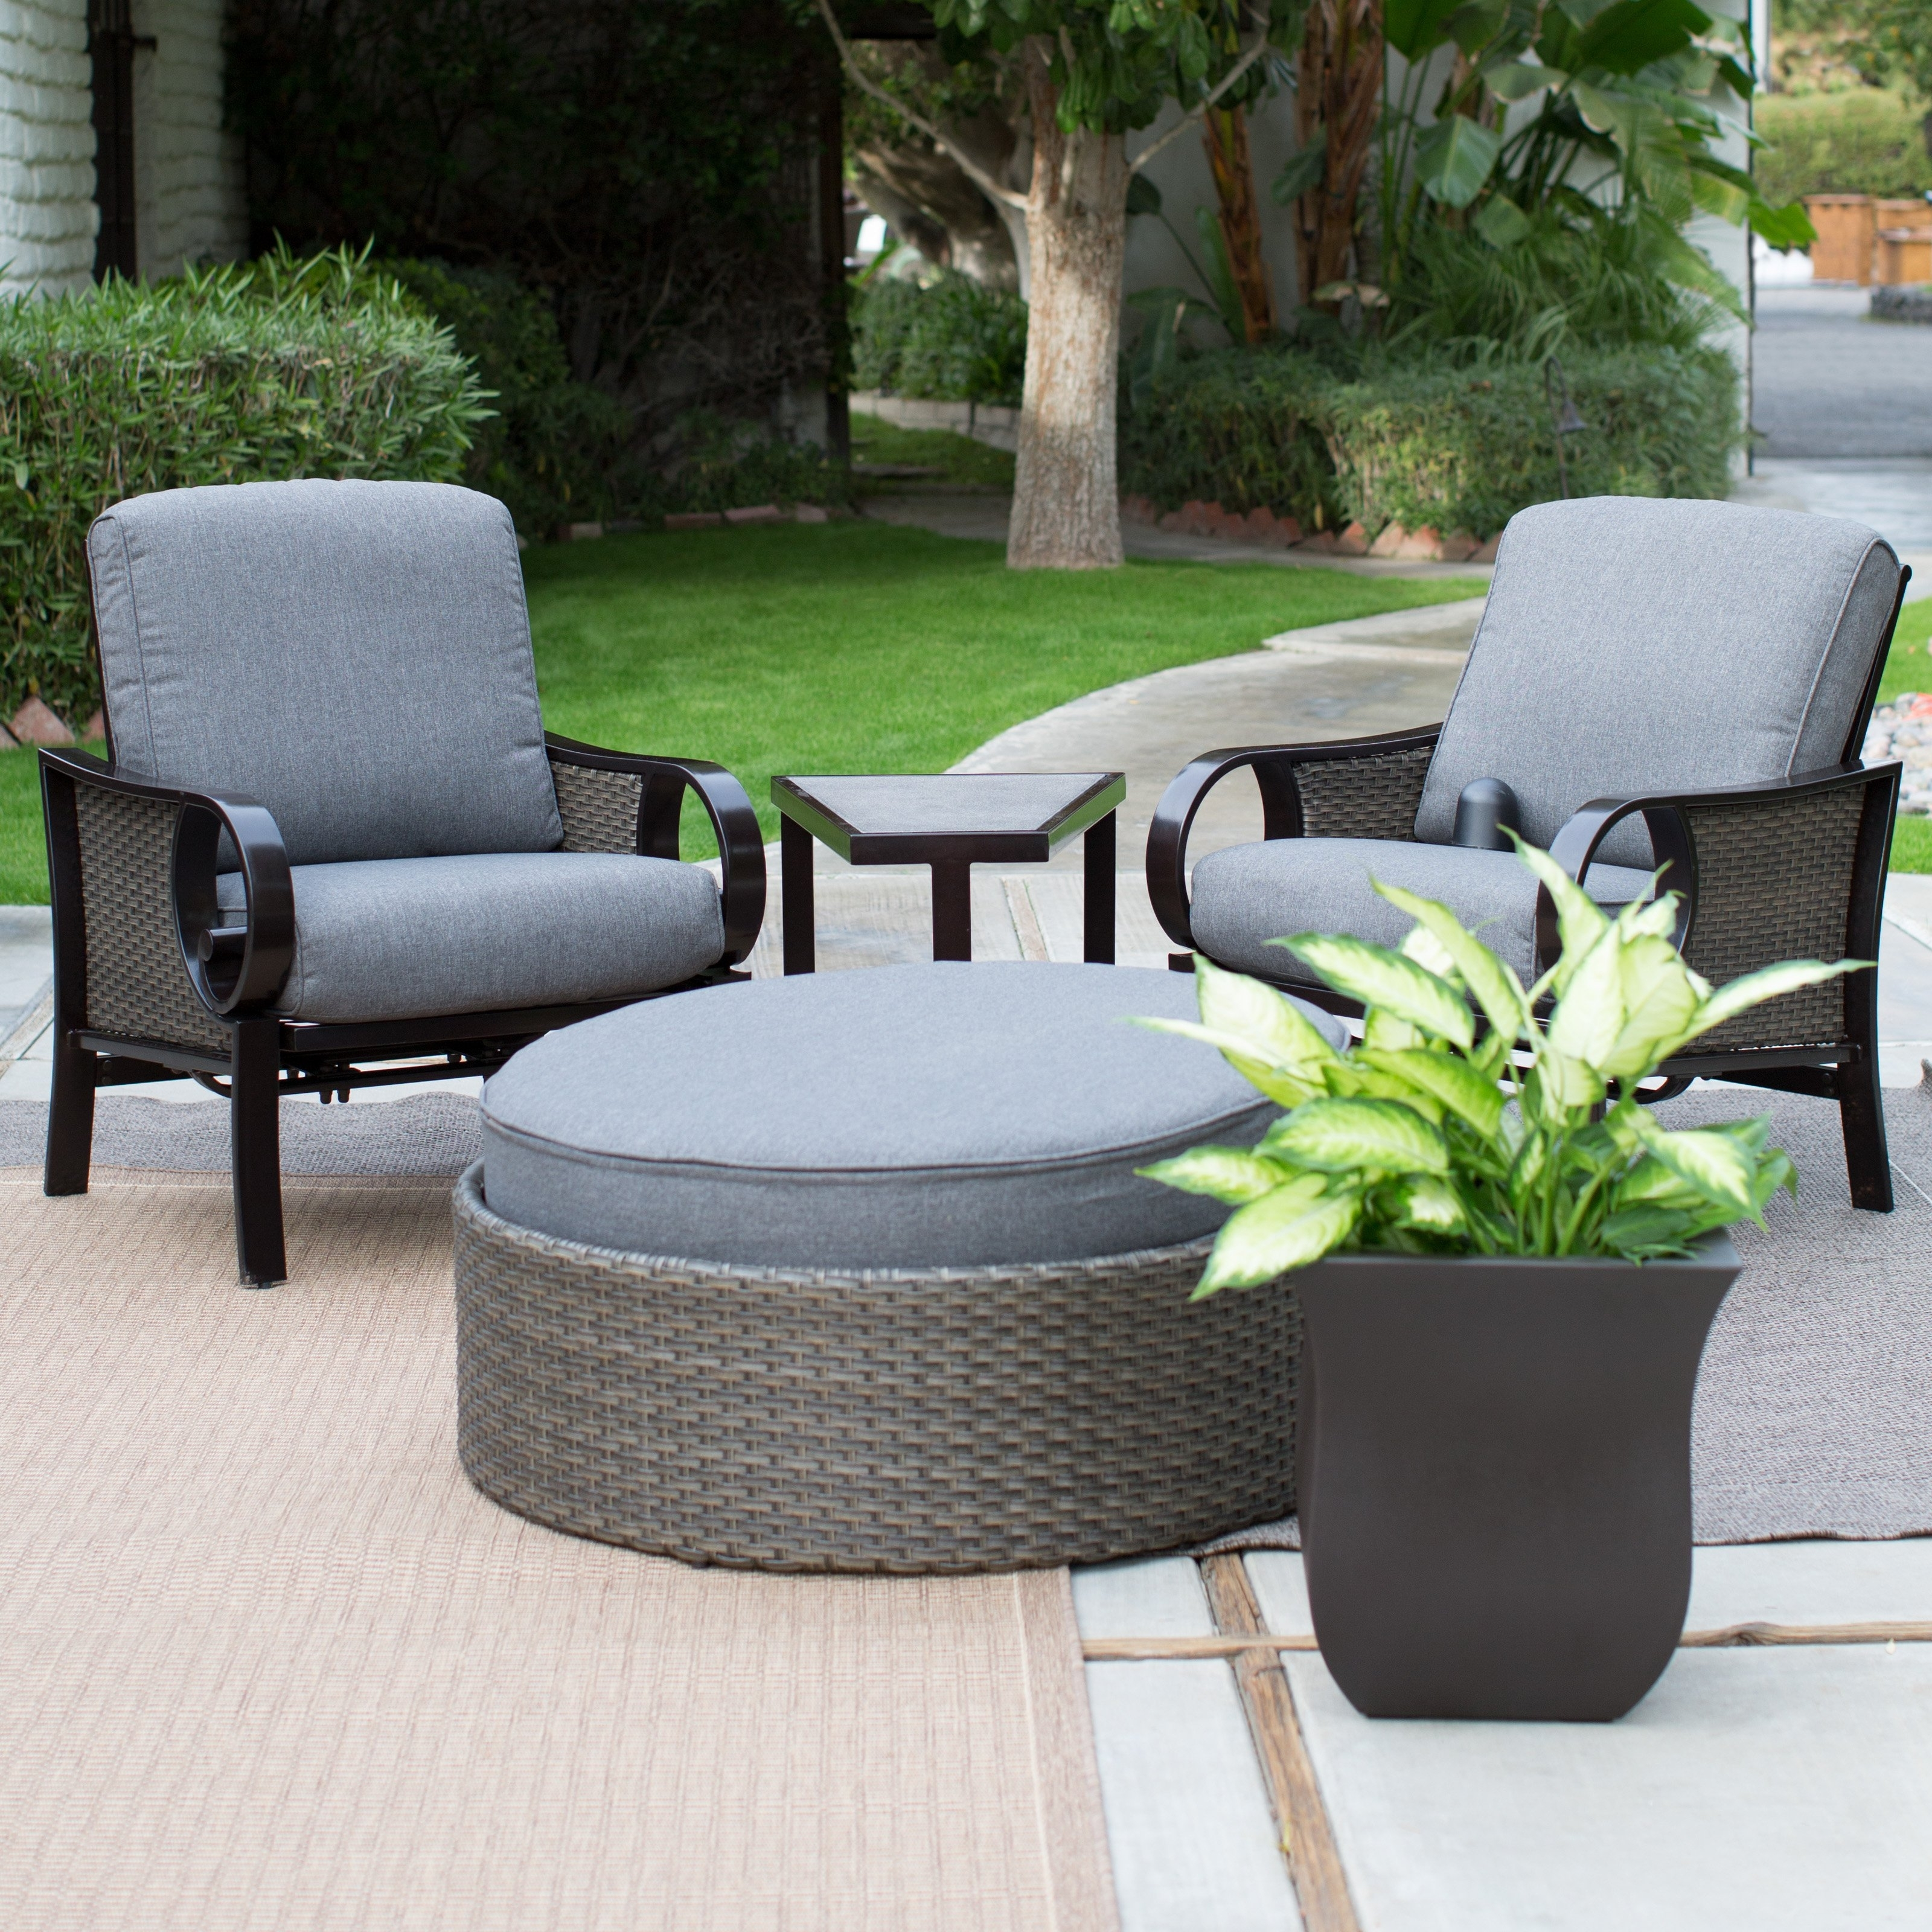 22 Creative Patio Conversation Sets With Ottoman – Pixelmari With Most Up To Date Patio Conversation Sets With Ottoman (View 1 of 20)